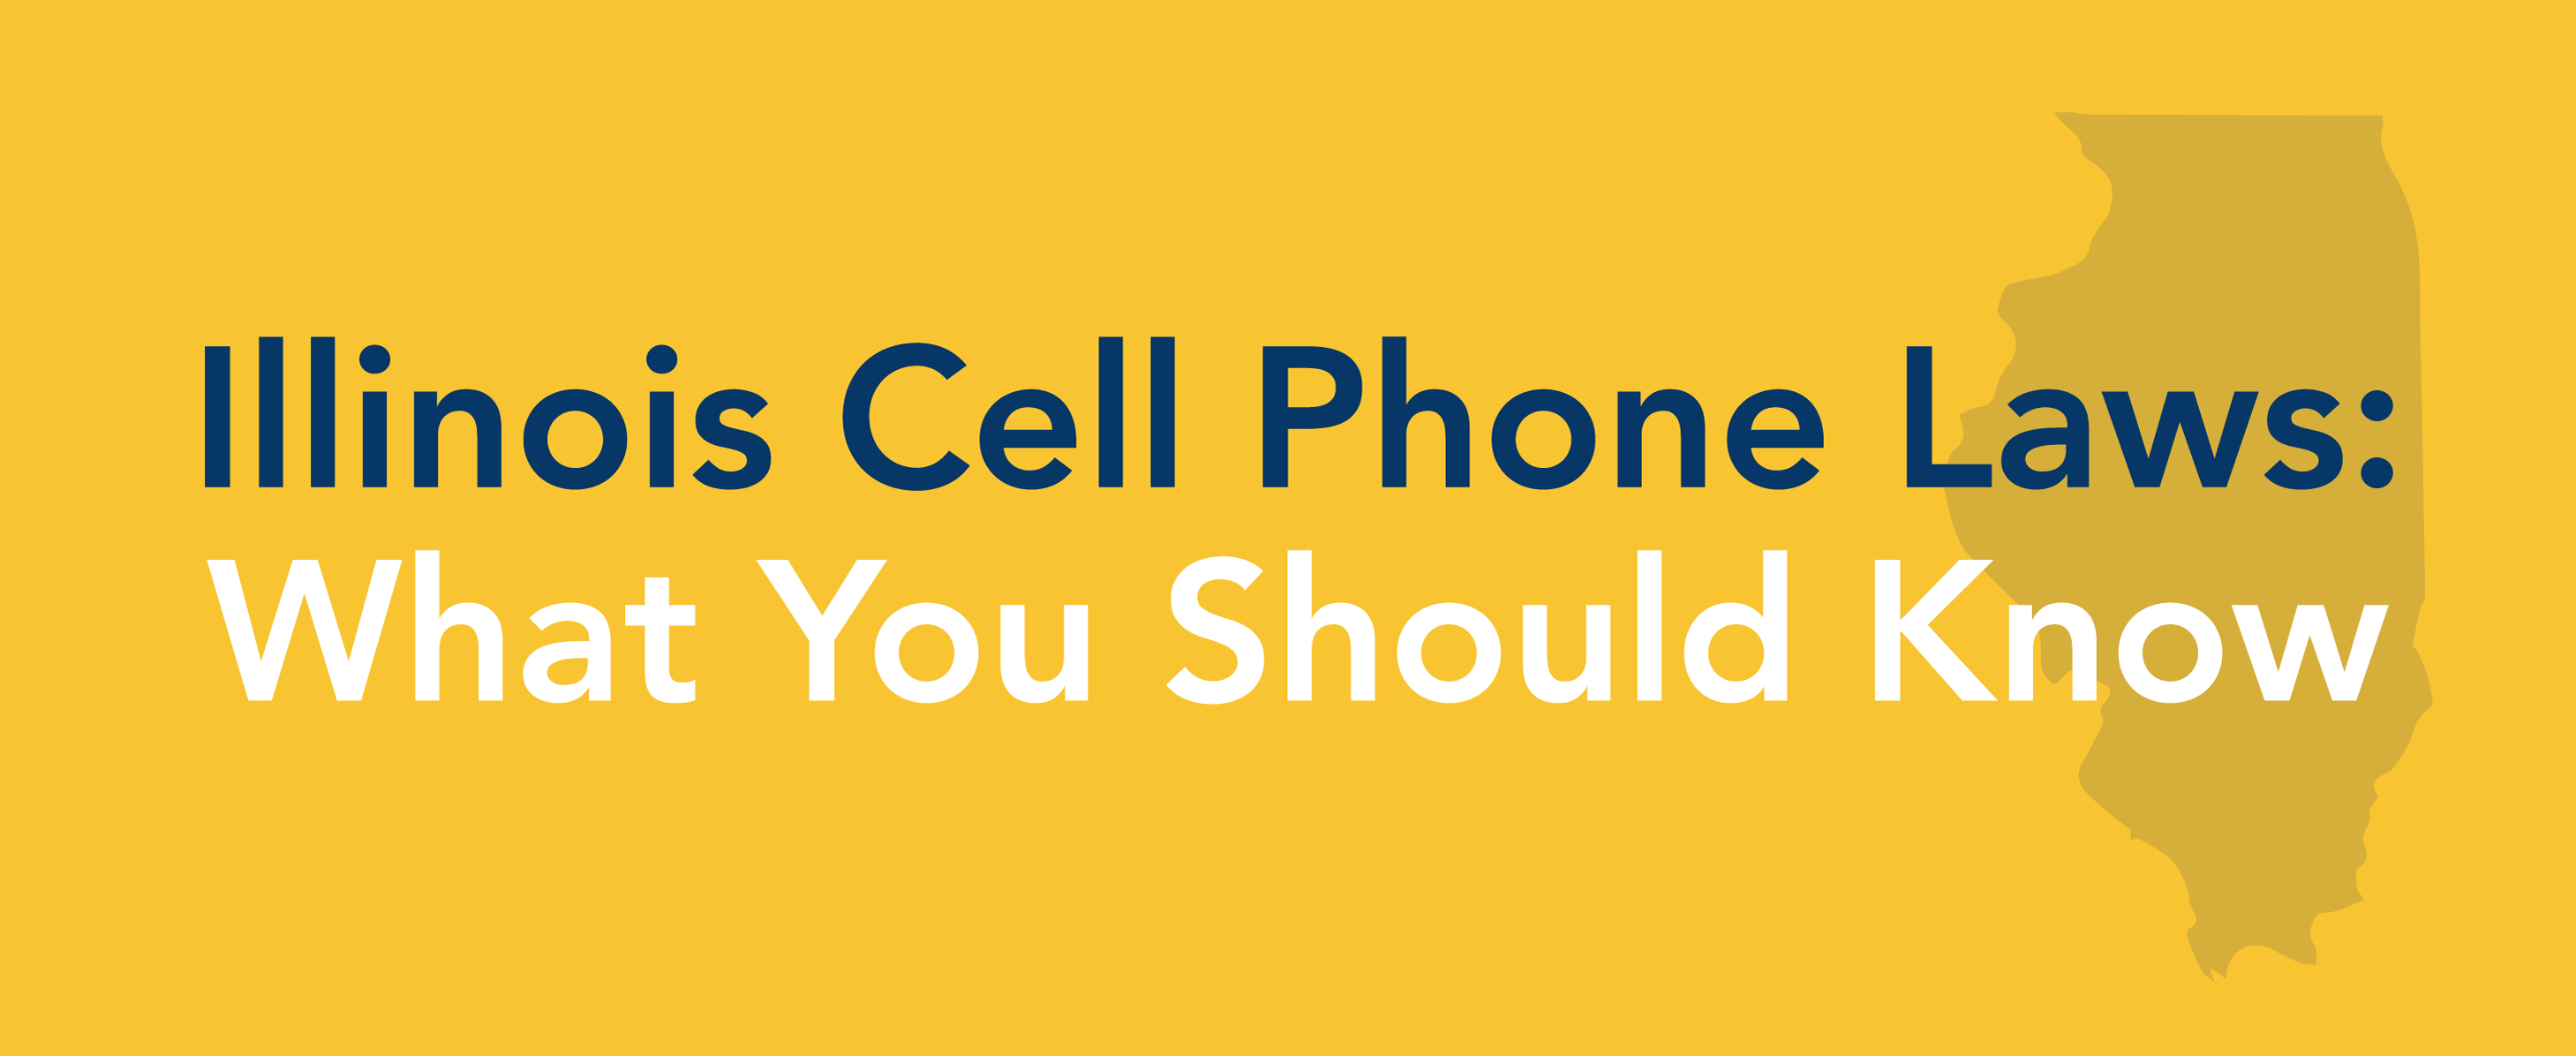 illinois cell phone laws graphic